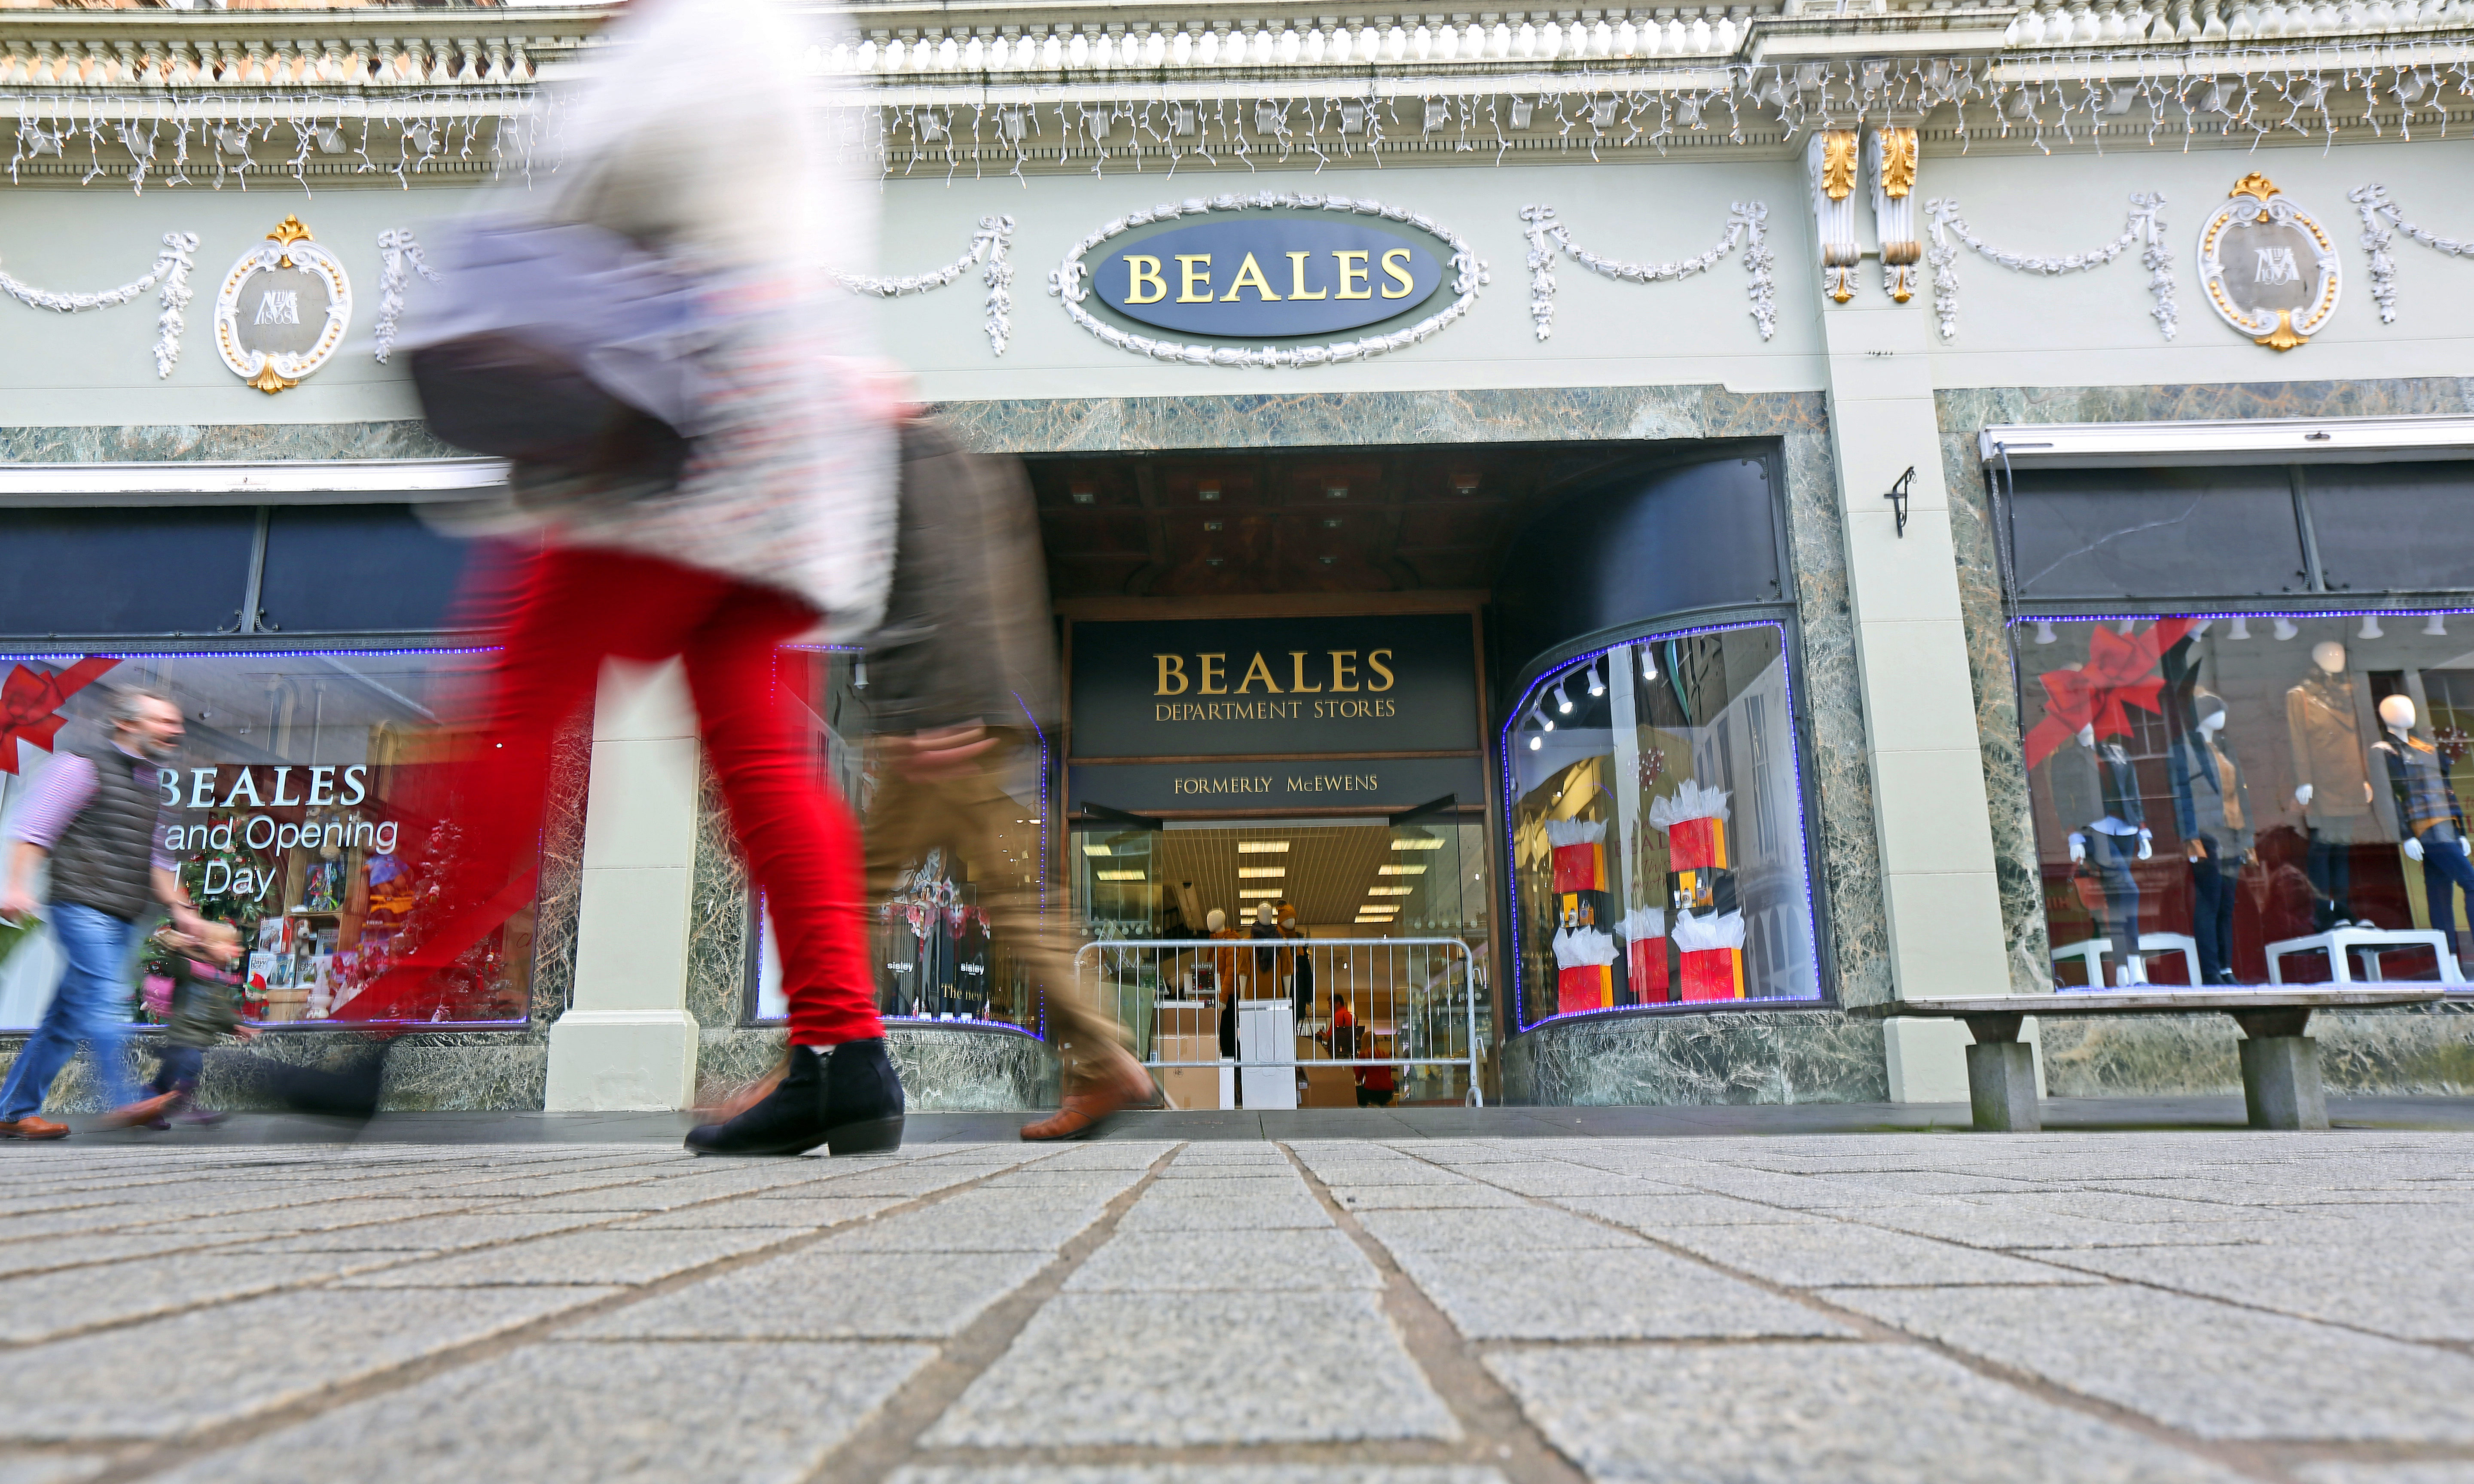 Beales store in Perth.